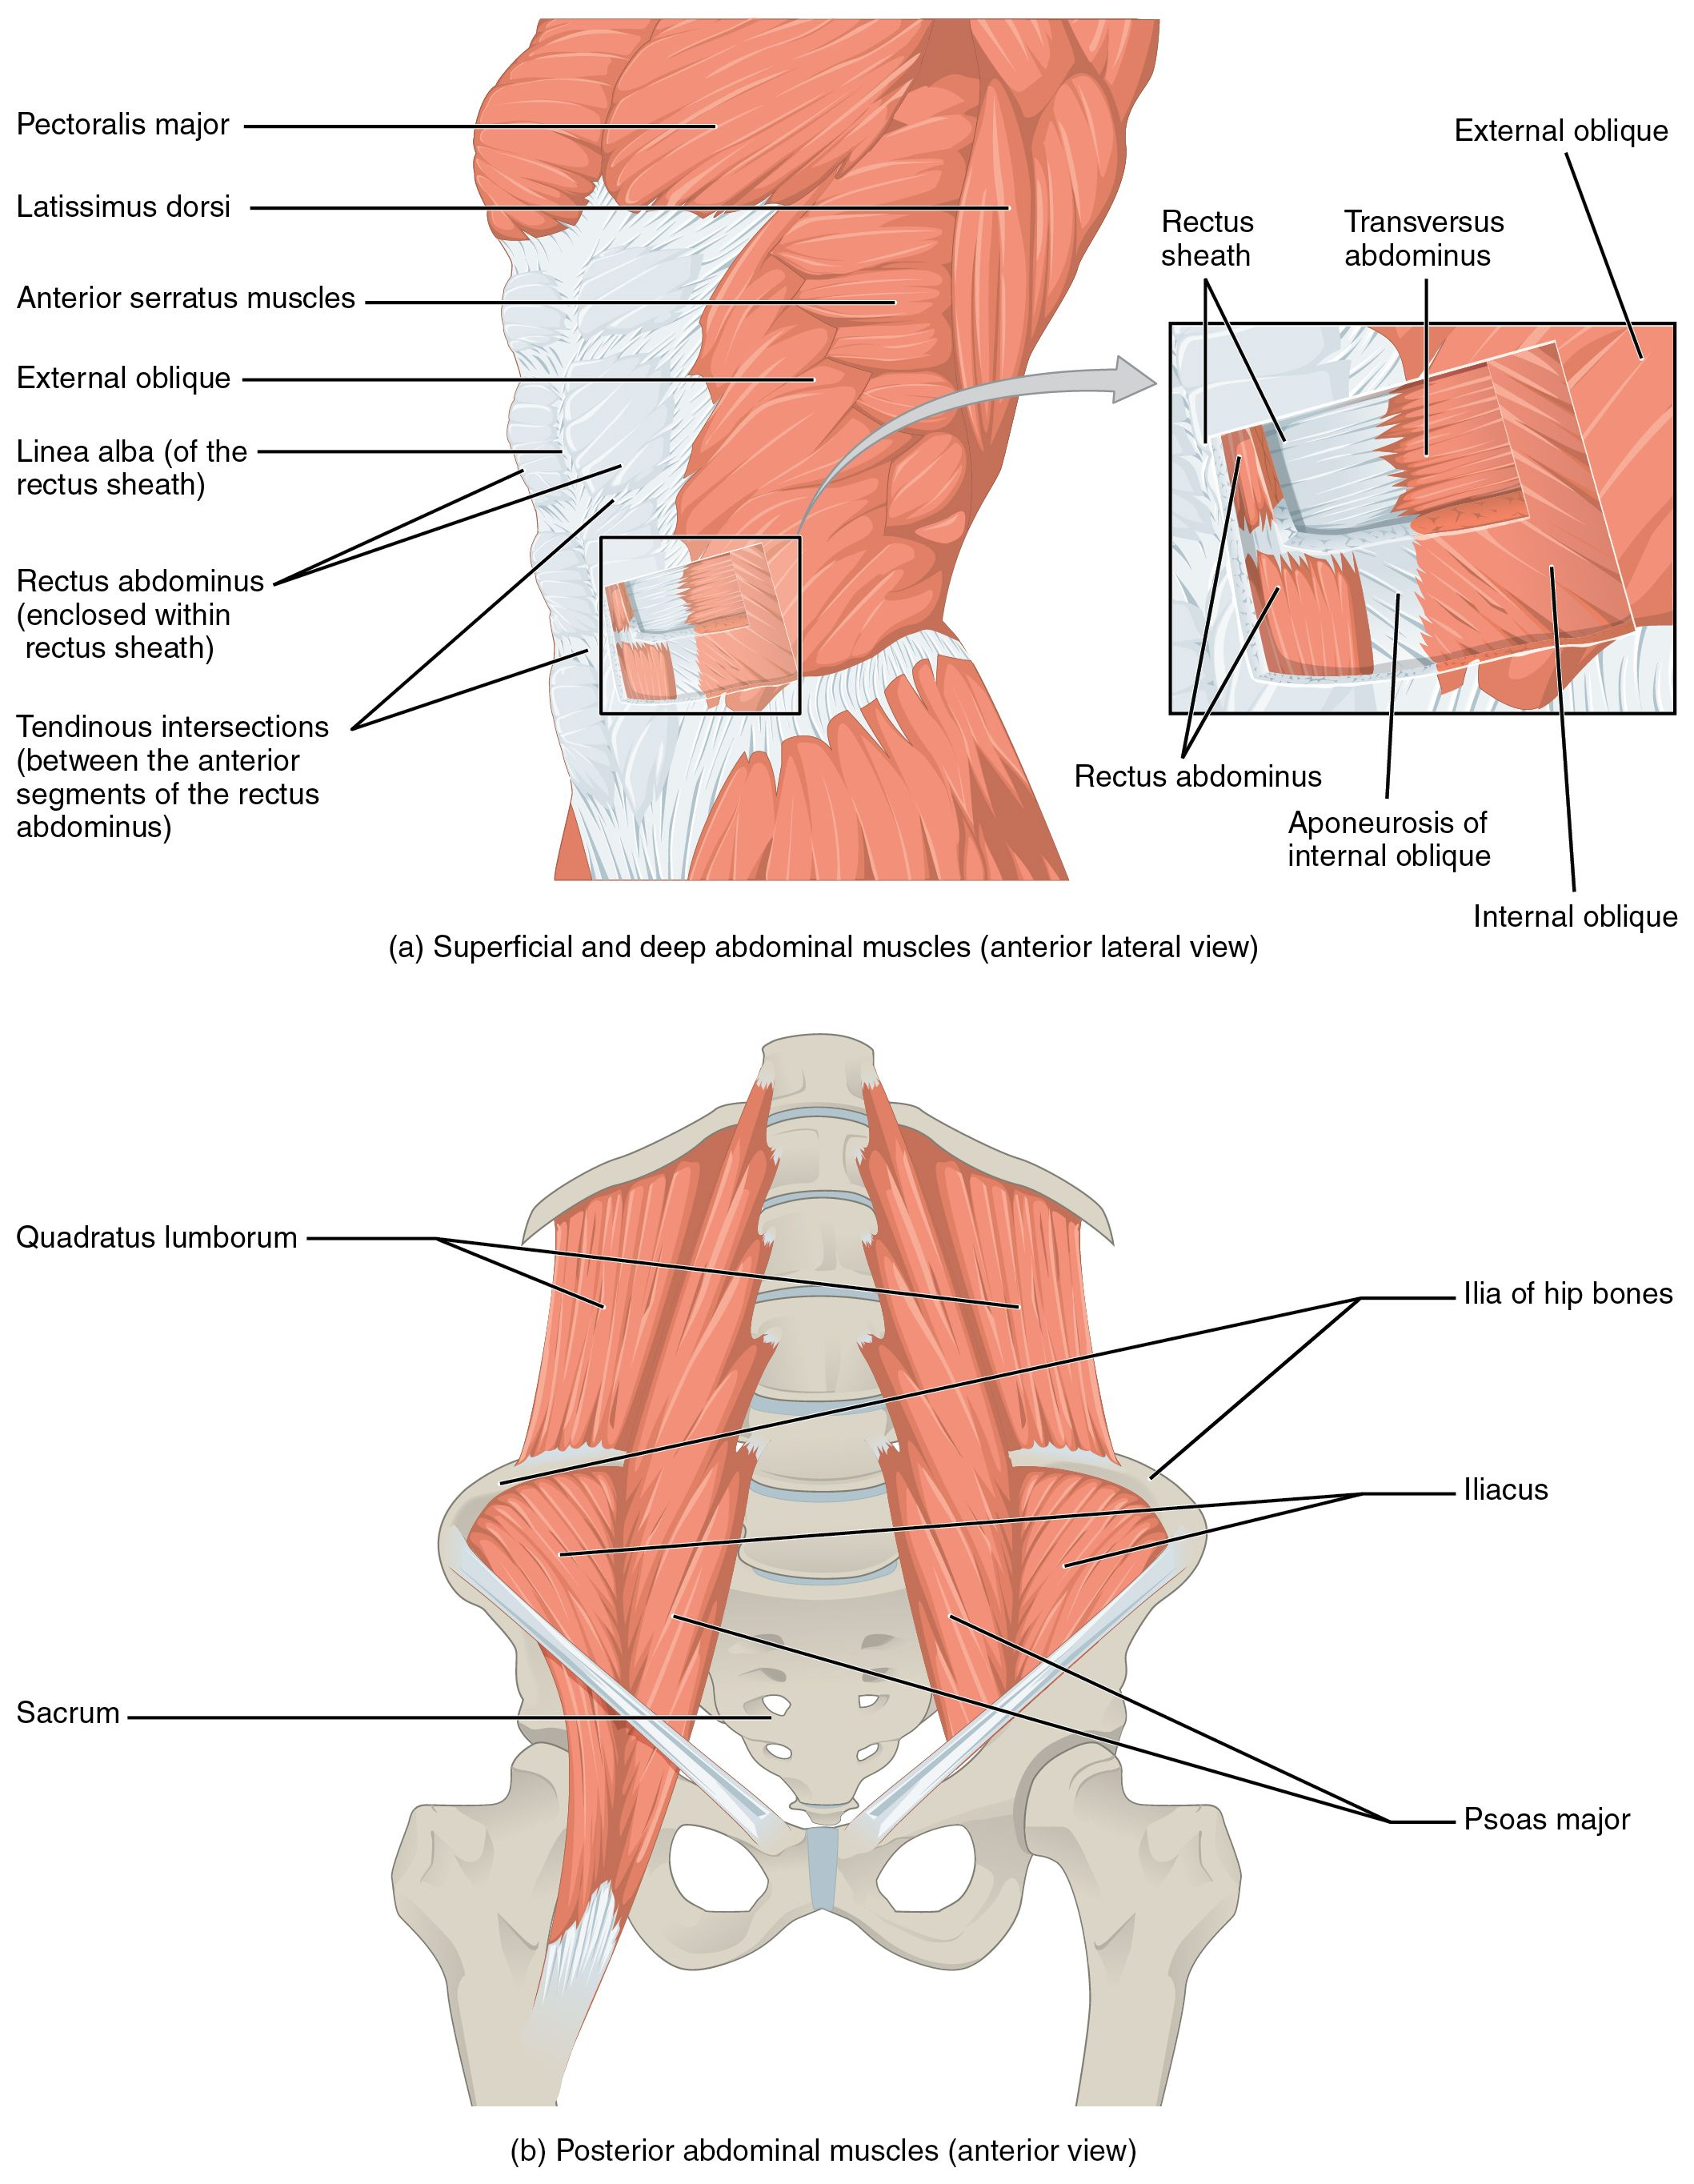 transversus abdominis | ... the transversus abdominis and the rectus ...